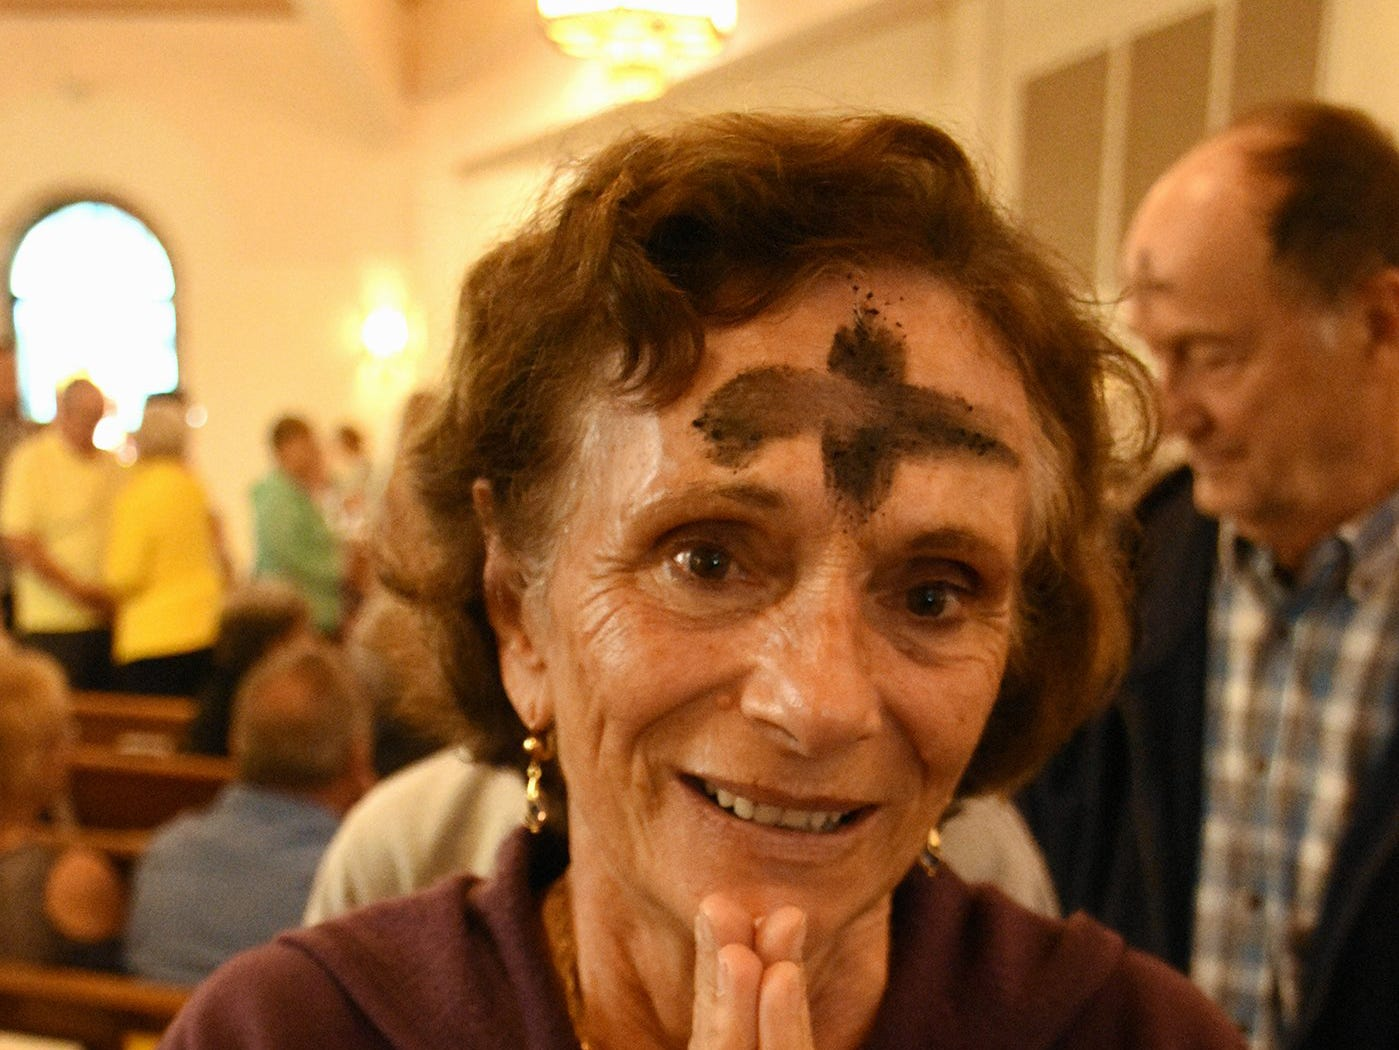 Antoinette Dotro returns to her pew after being daubed with ashes. Catholics on Marco Island and around the world, along with many other Christians, celebrated Ash Wednesday by attending mass and having a cross drawn on their foreheads in ashes.